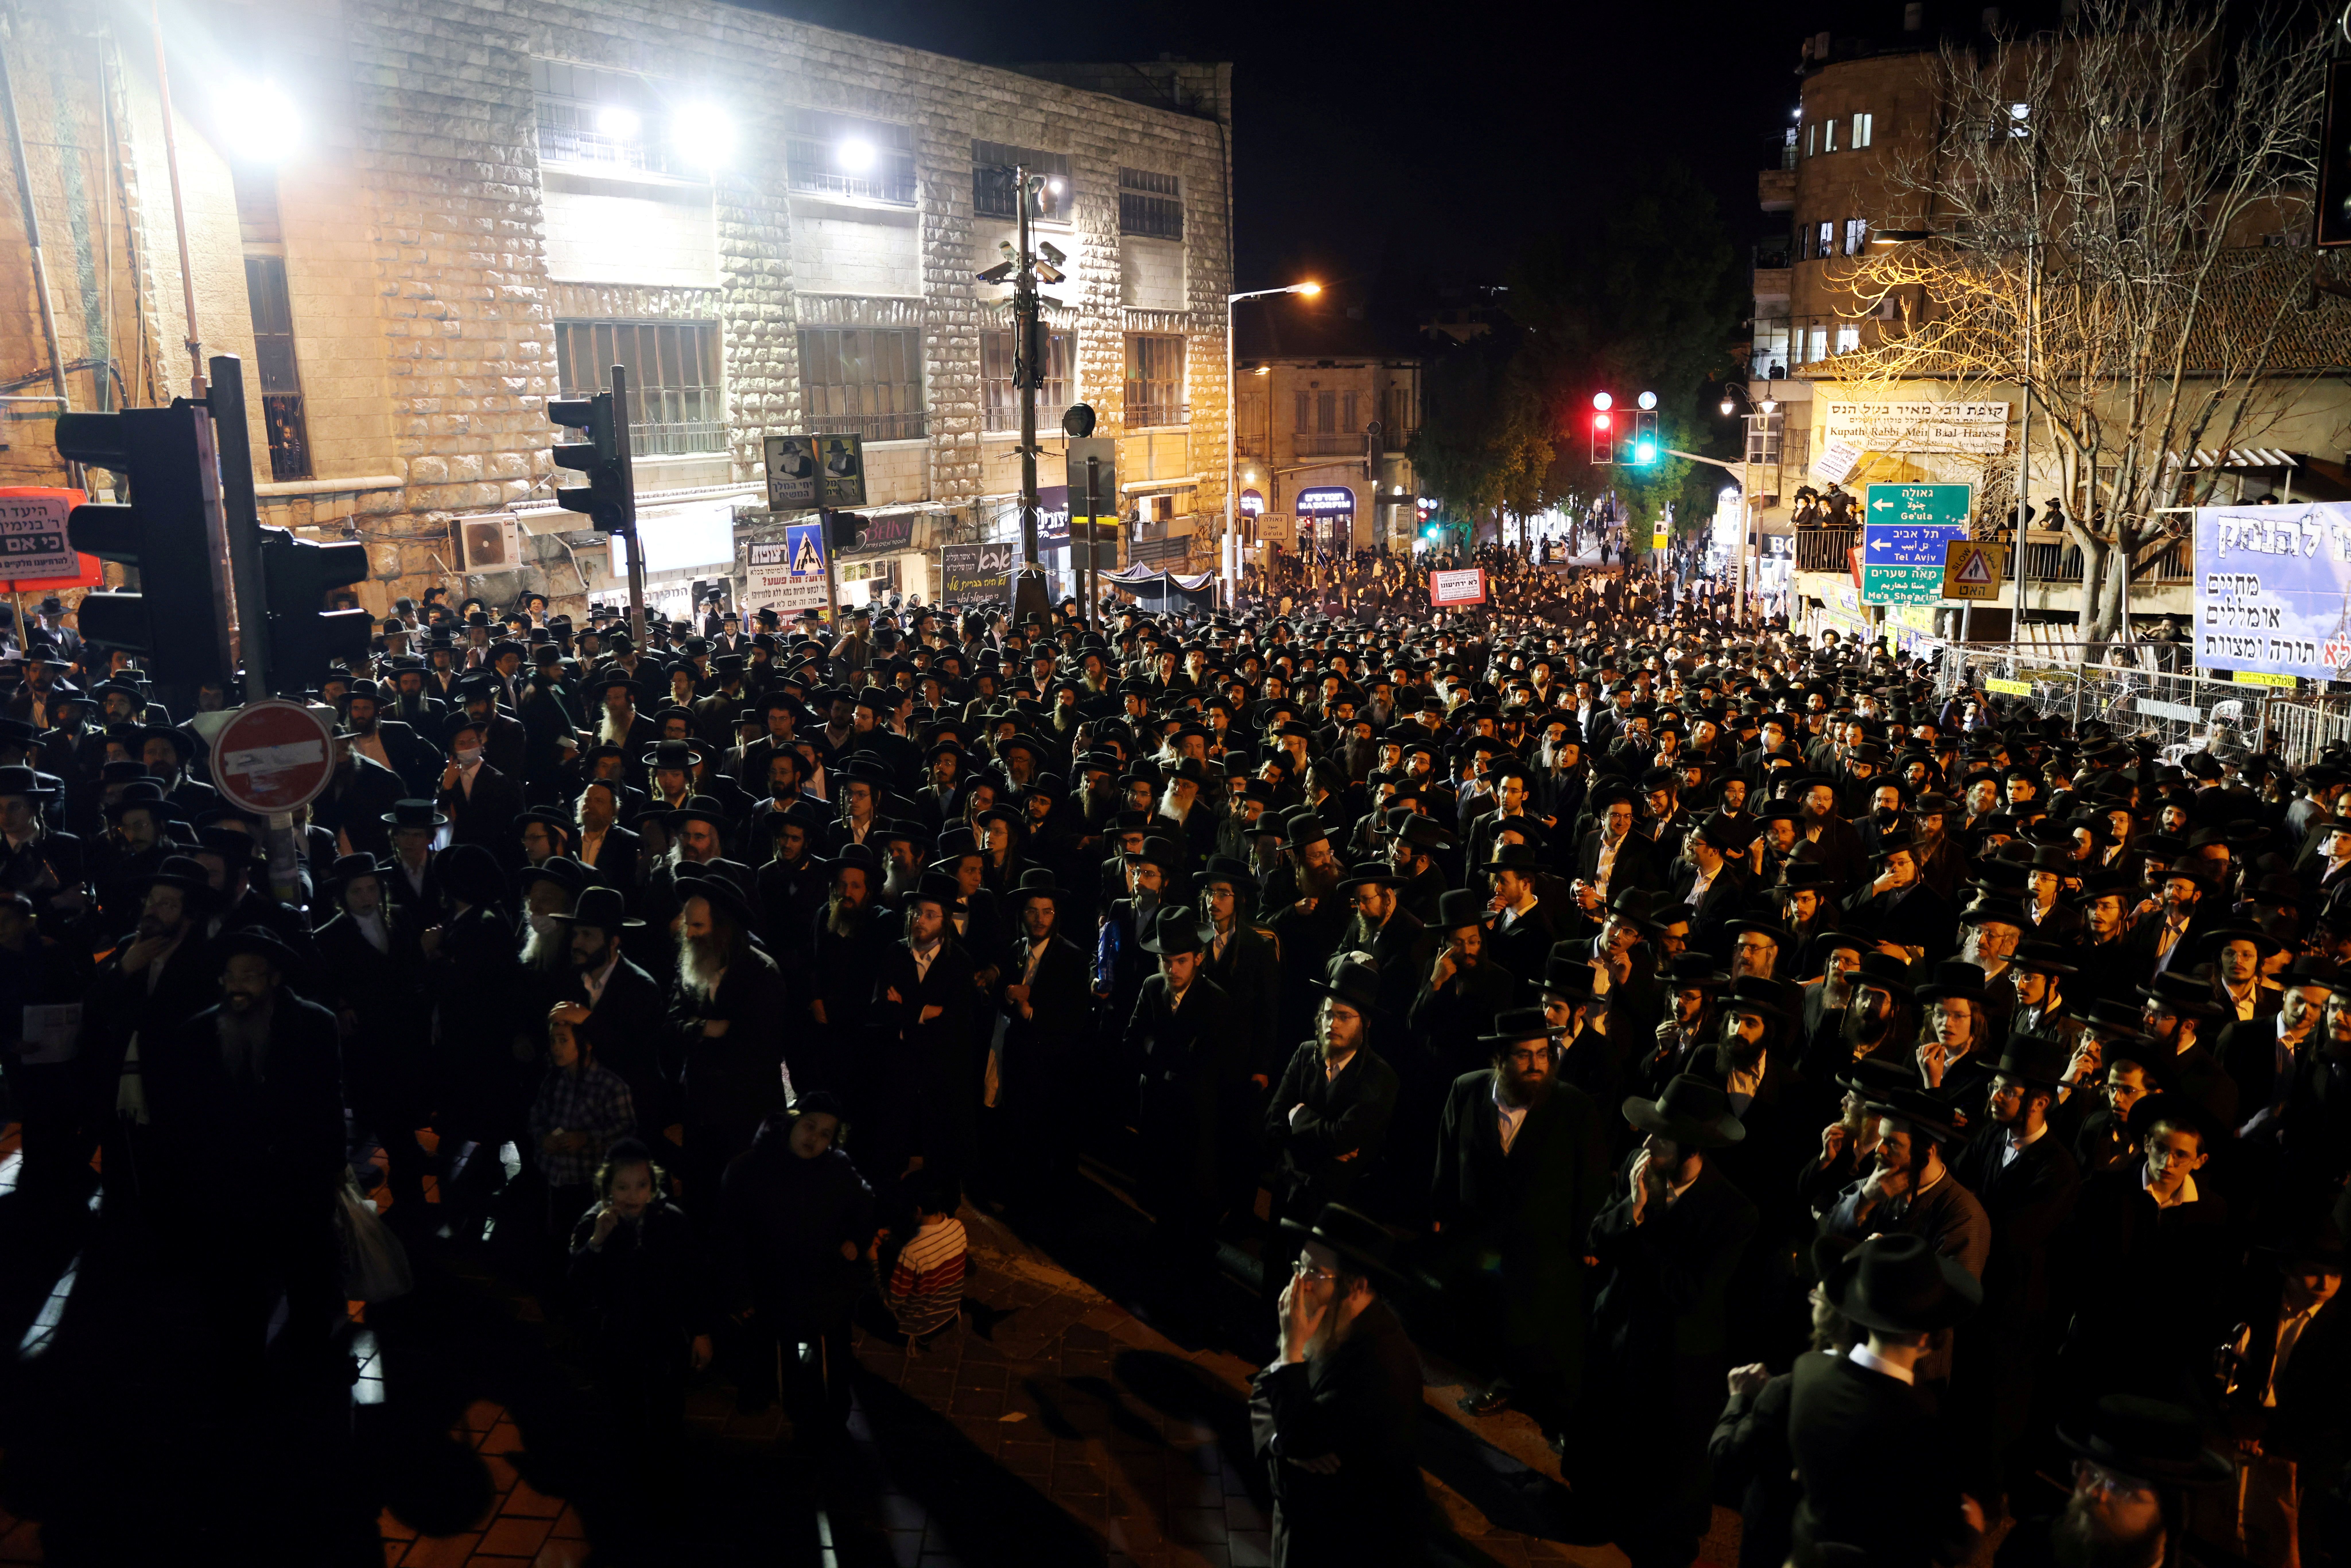 Ultra Orthodox Jews protest against the government's coronavirus disease (COVID-19) restrictions in Jerusalem February 9, 2021 REUTERS/Ronen Zvulun/File Photo